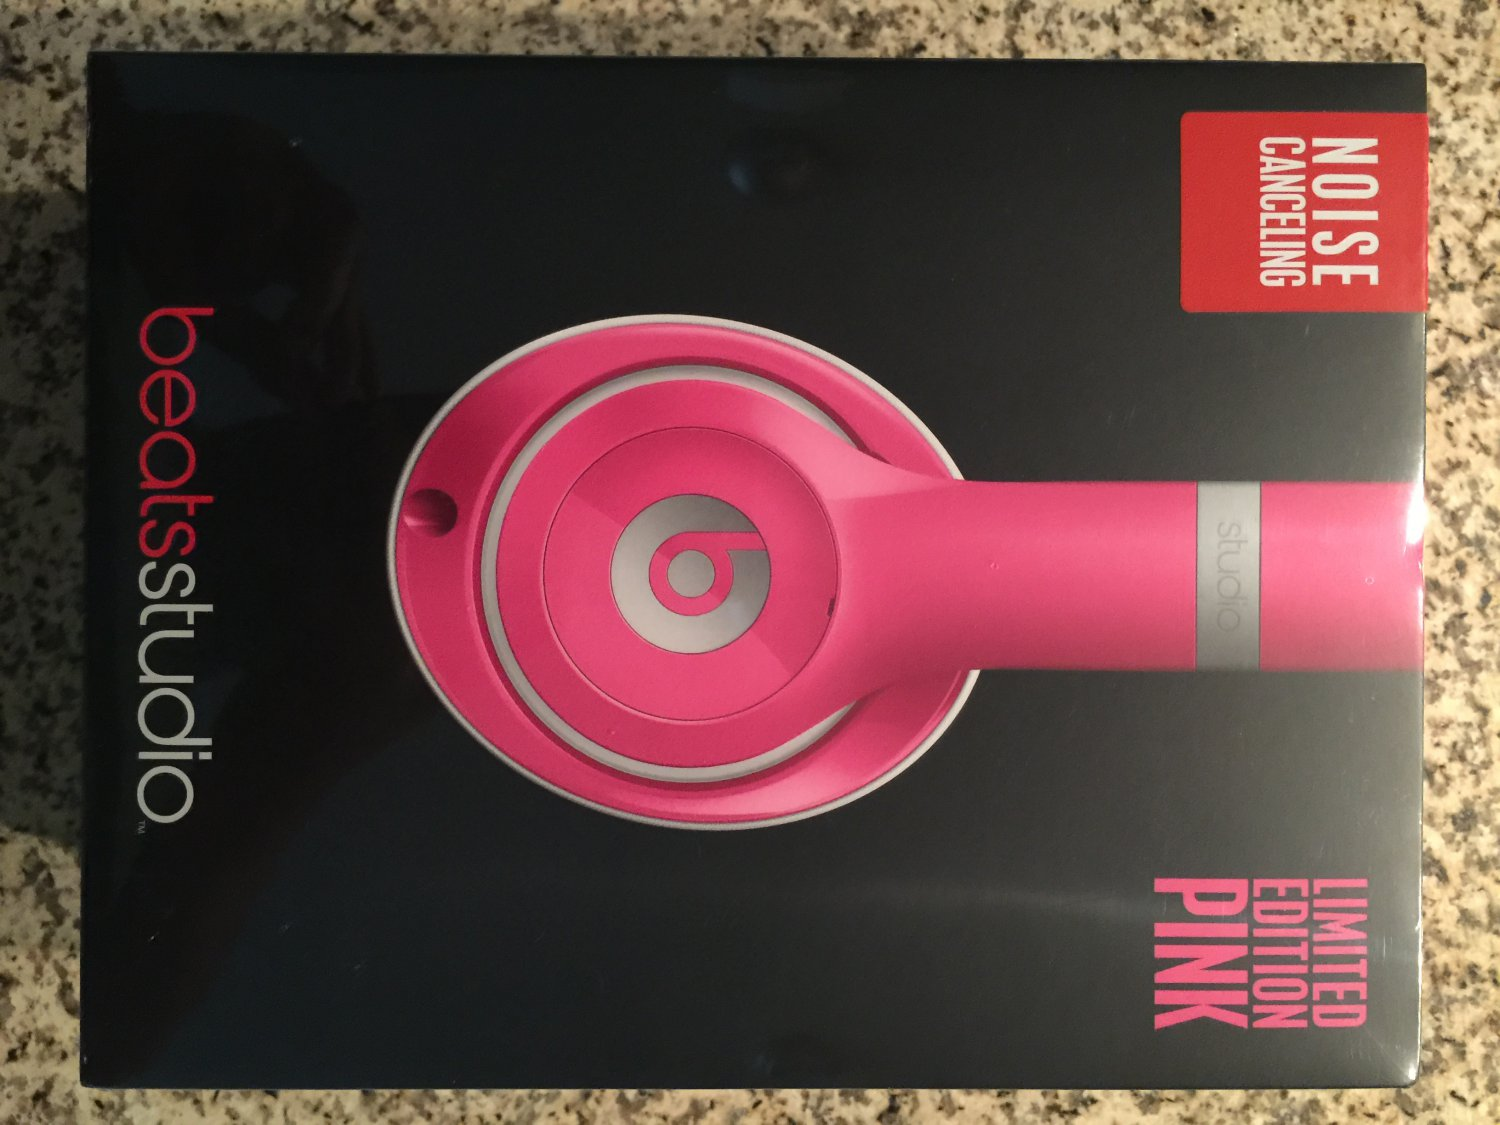 Beats Studio 2.0 Wired - Limited Edition Pink